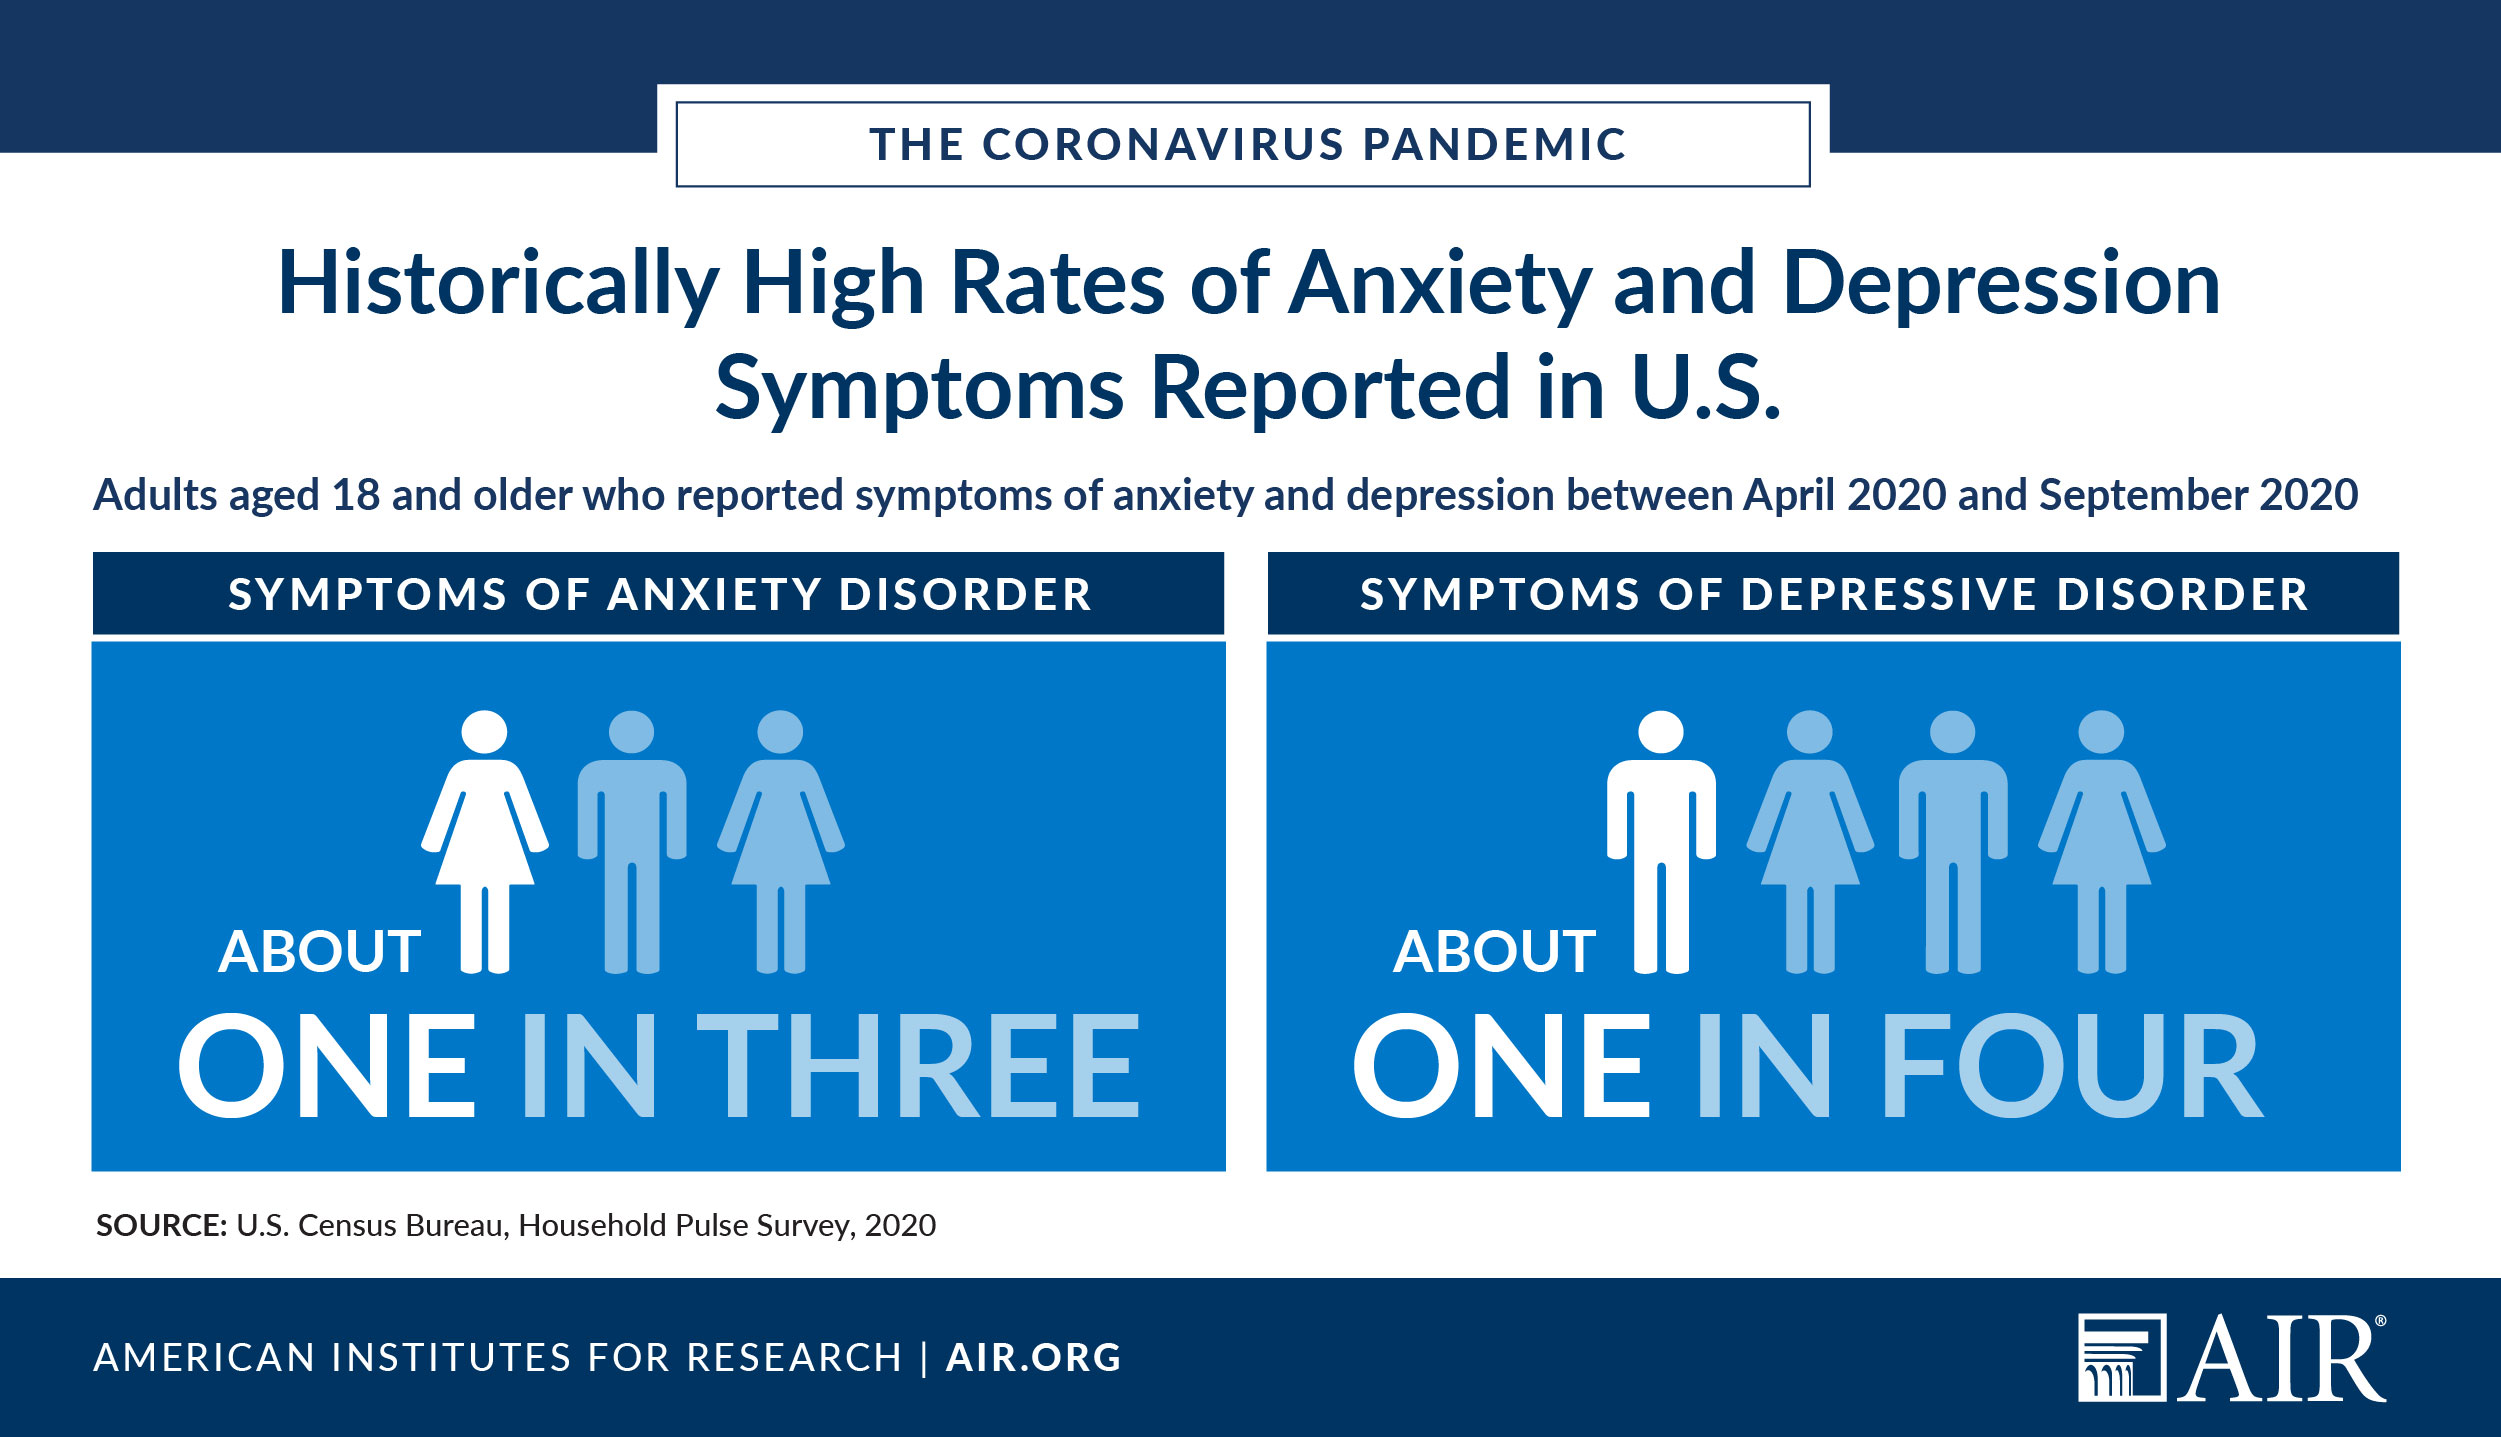 Infographic: Historically High Rates of Anxiety and Depression Symptoms Report in U.S.